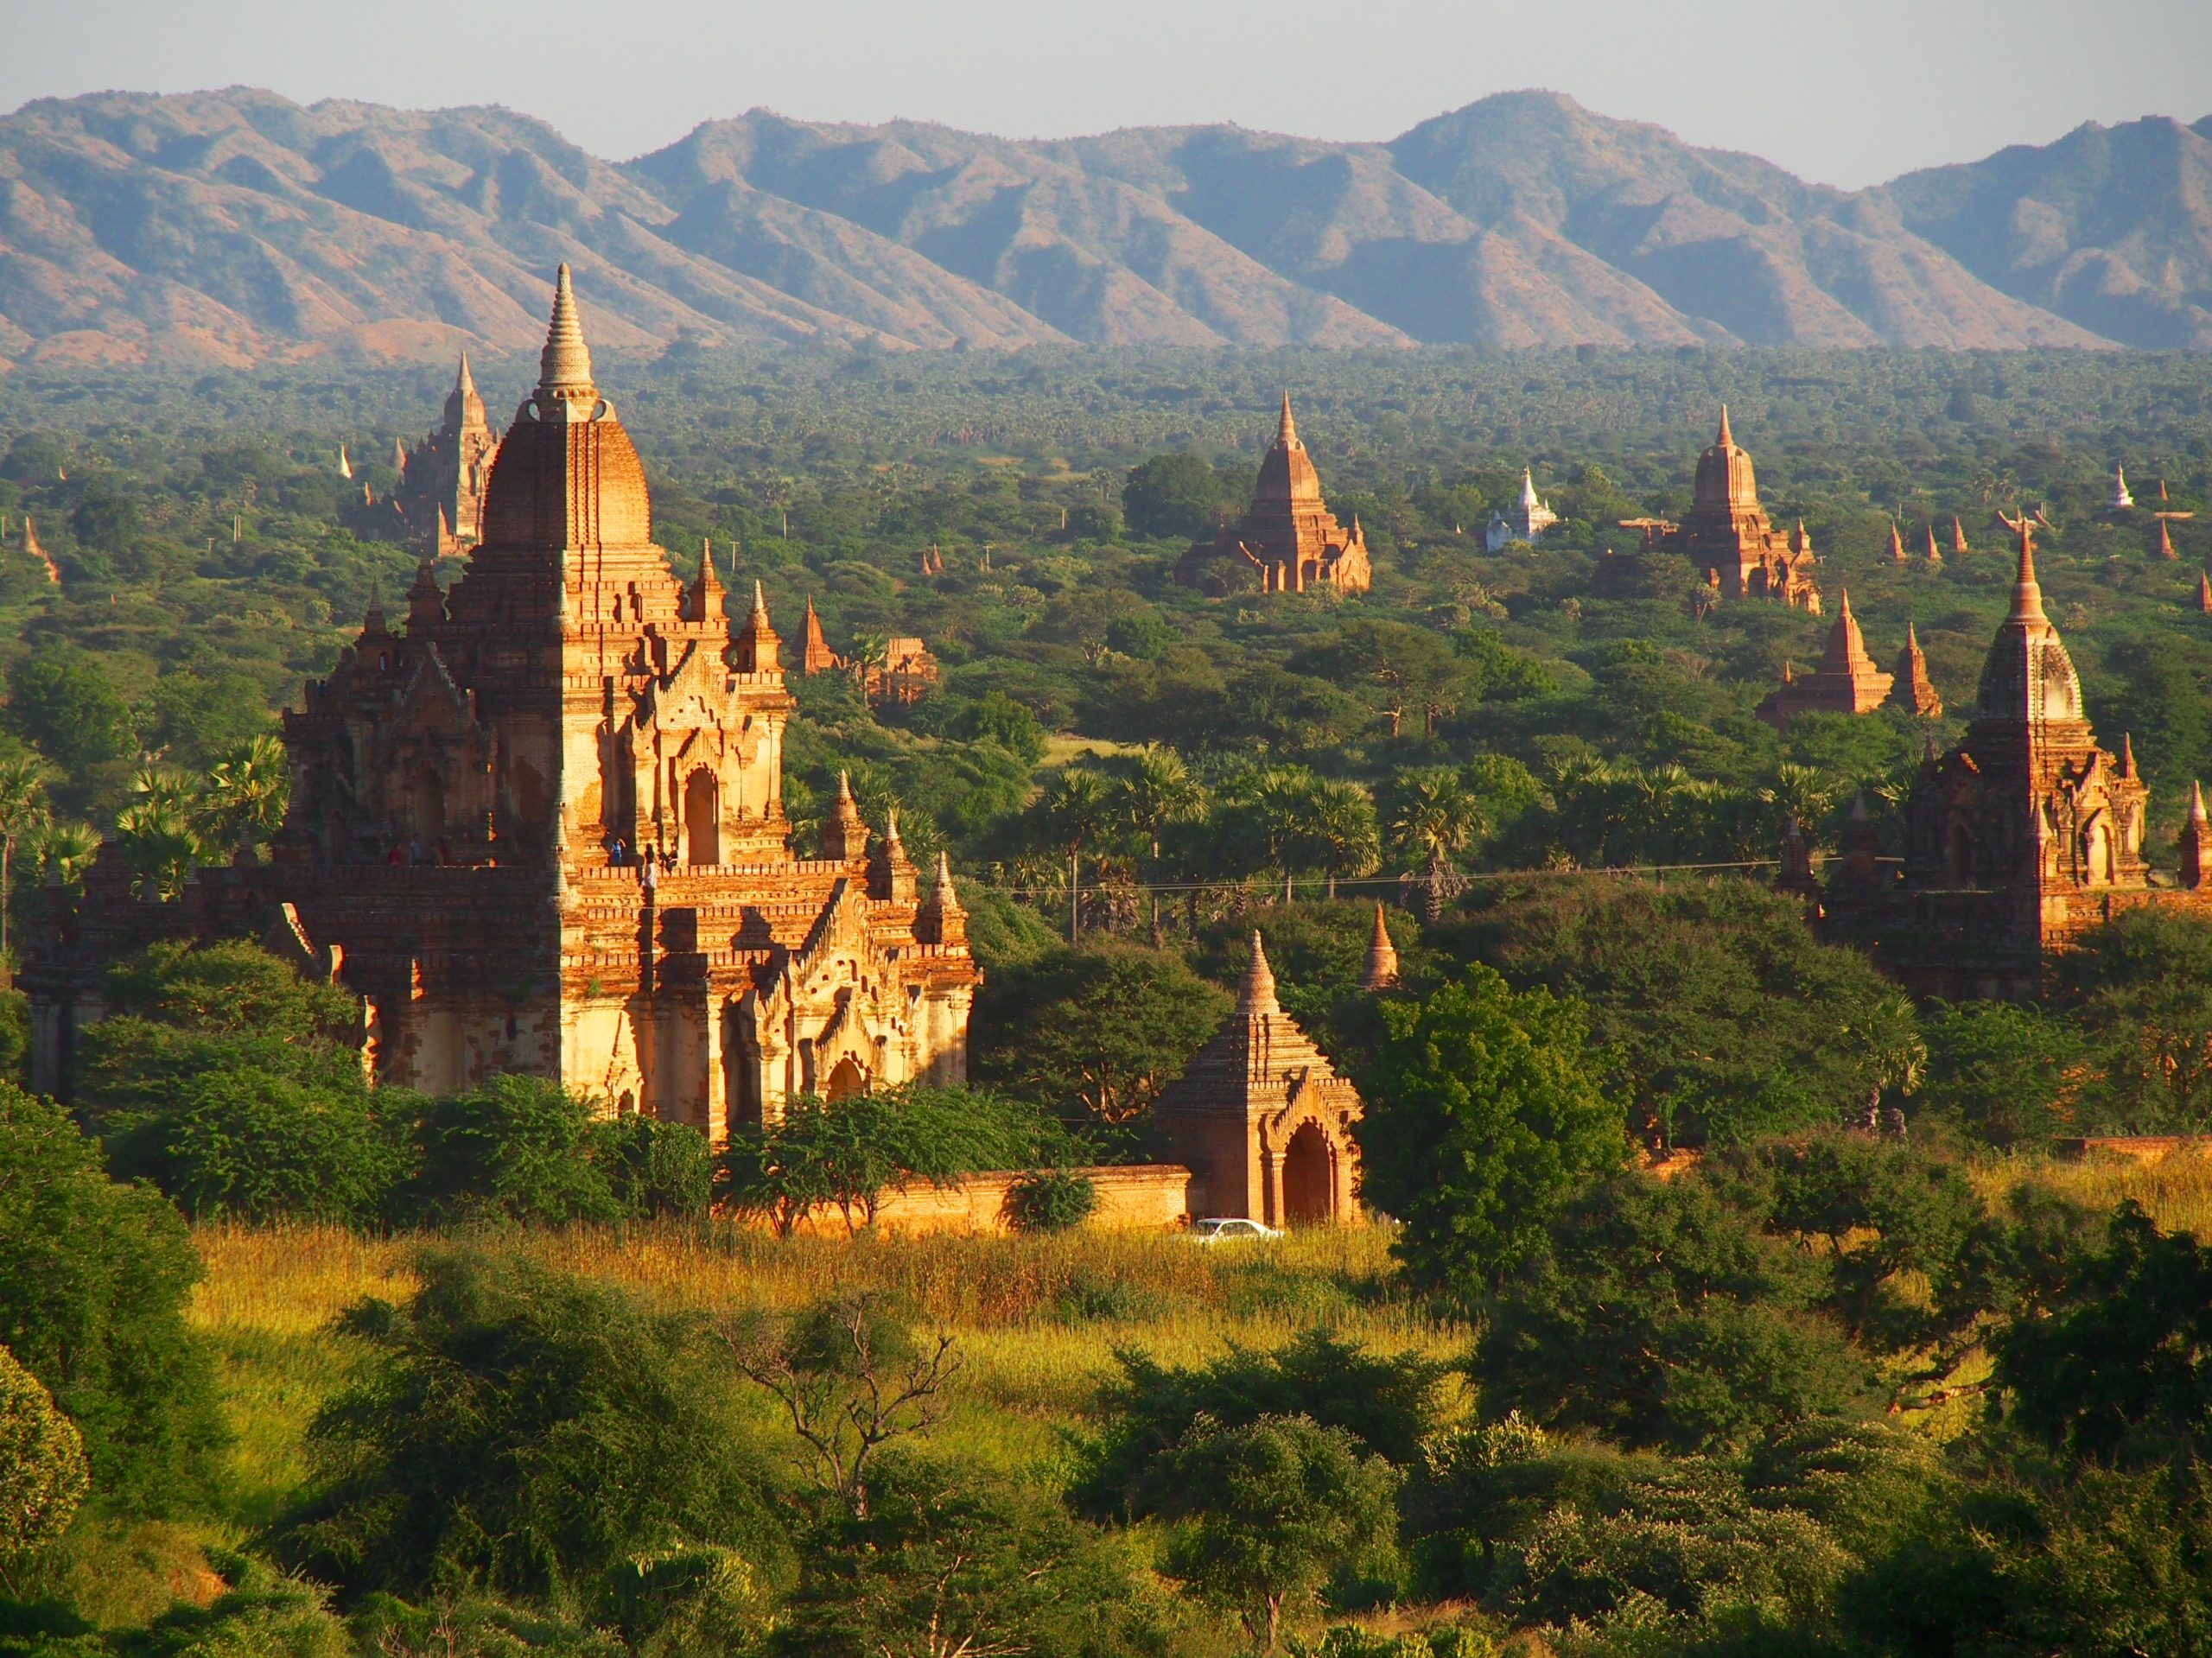 temples and pagoda in myanmar